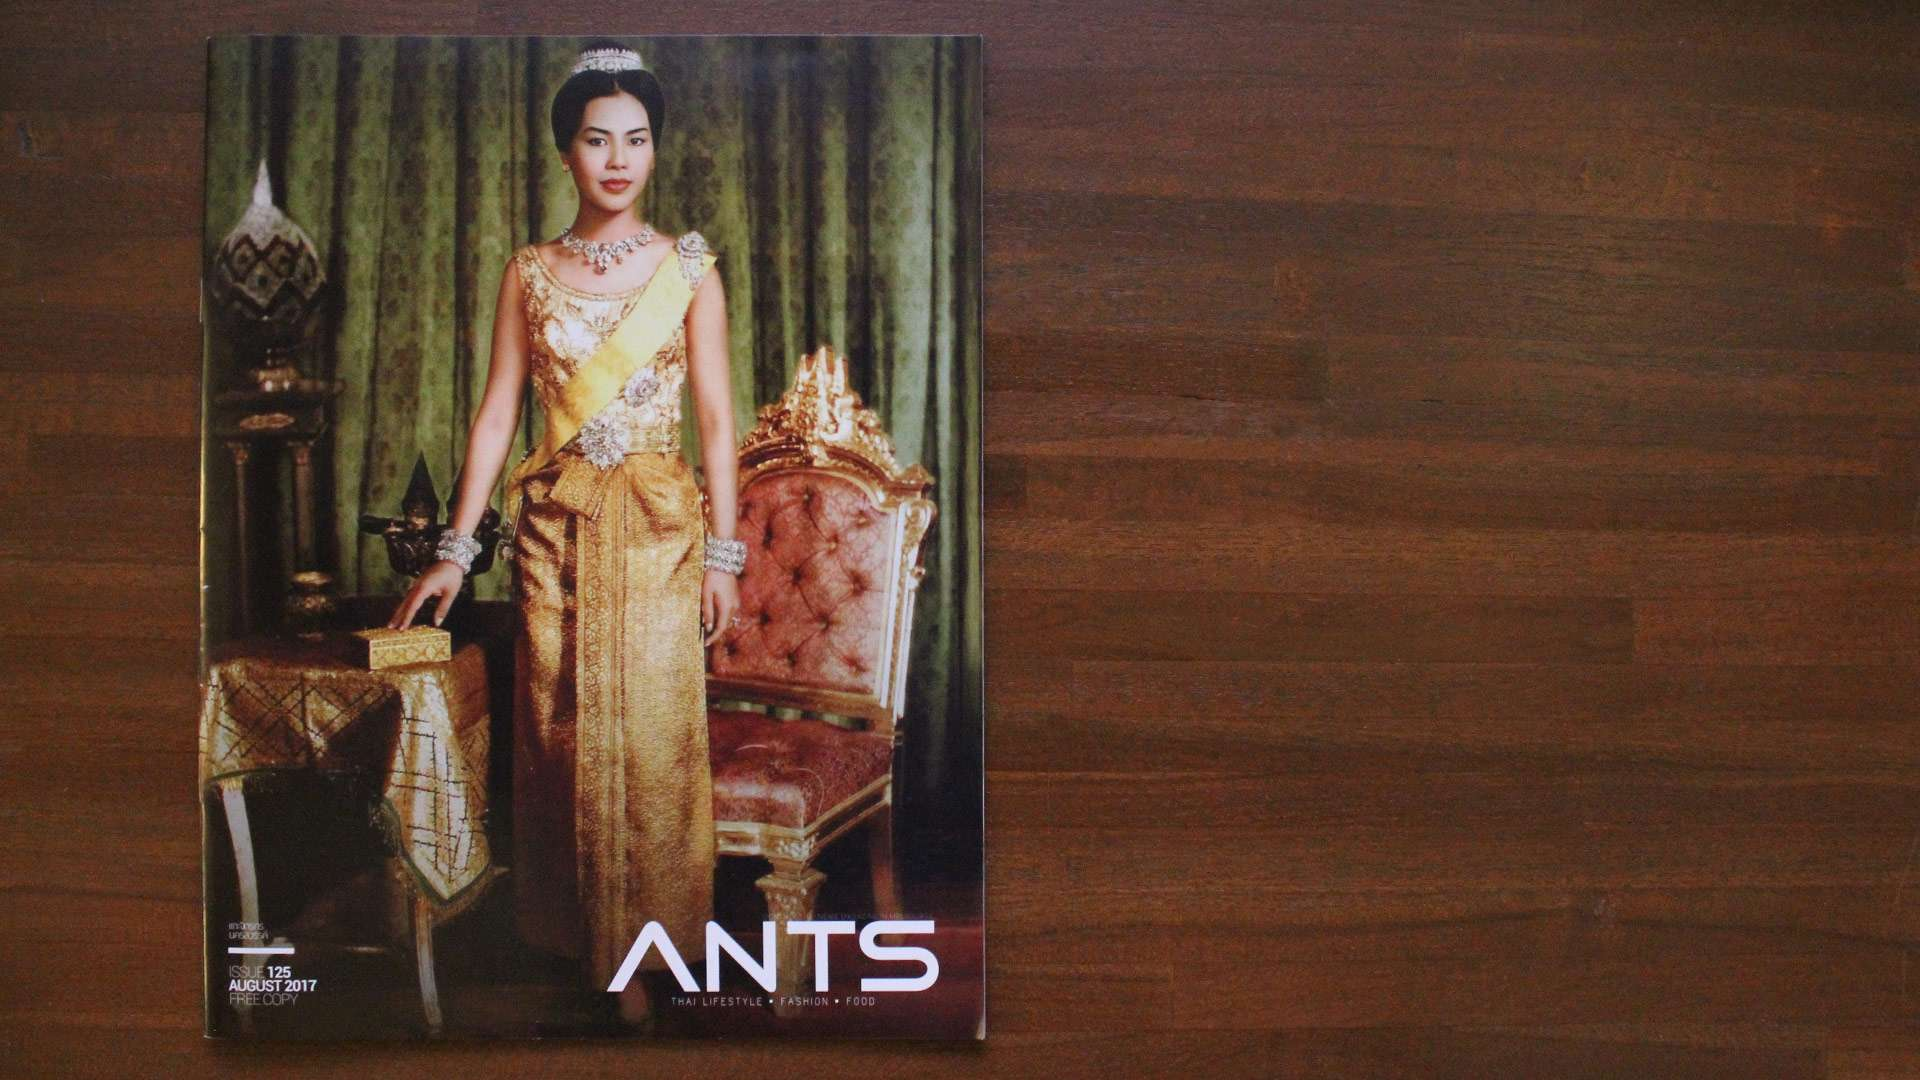 Thai Lifestyle Magazine ANTS Showcases Studio Equator's Chalawan Cocktail Bar & Restaurant